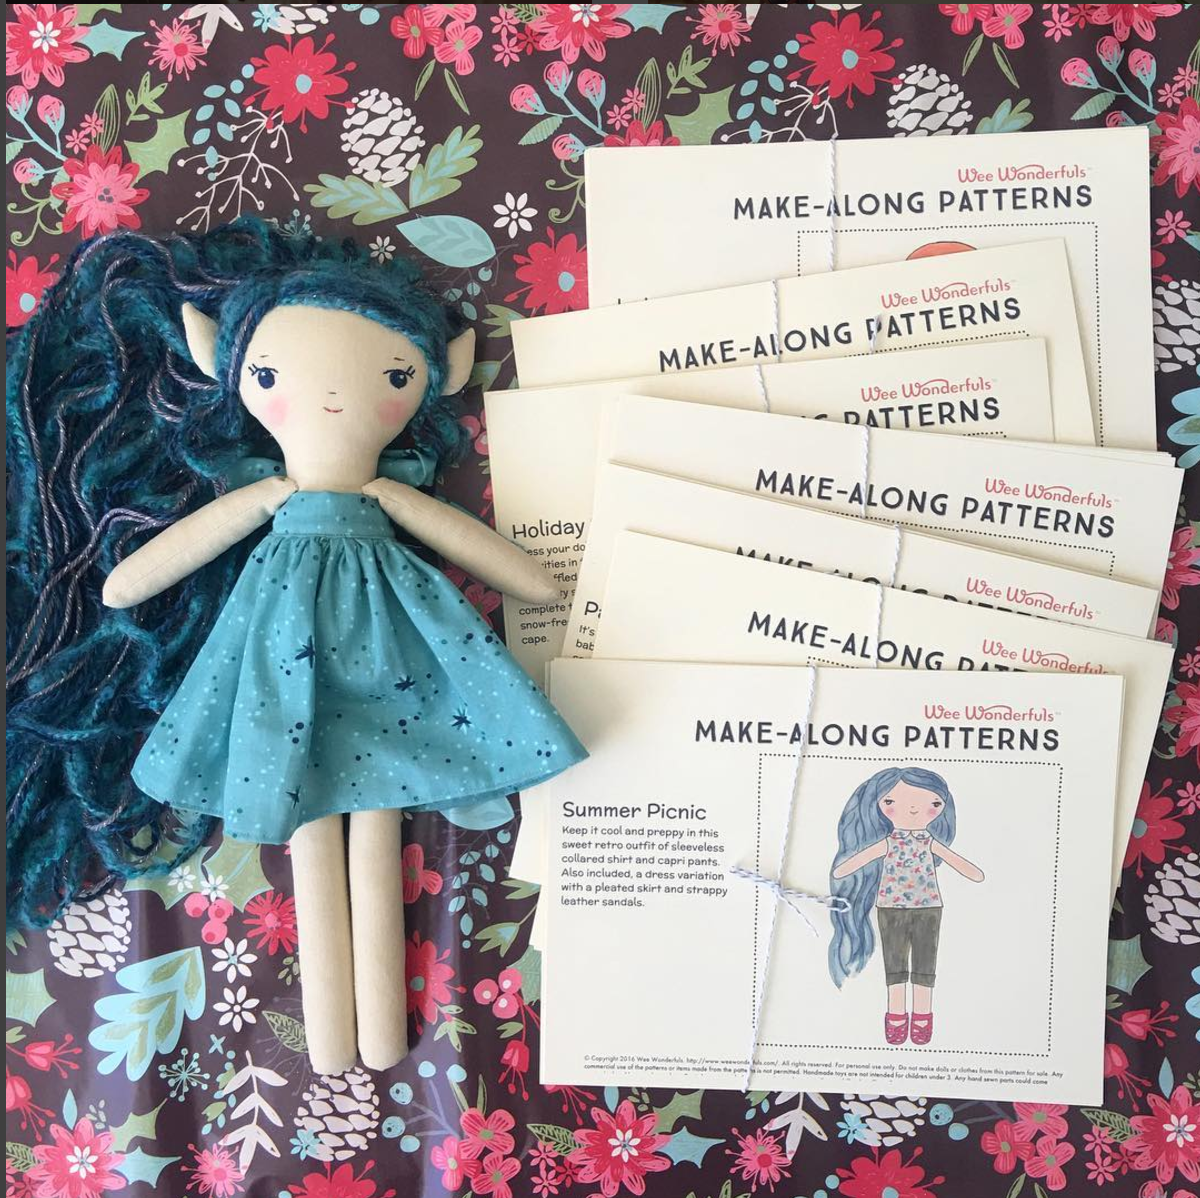 Make-Along doll & clothes patterns printed up as a gift